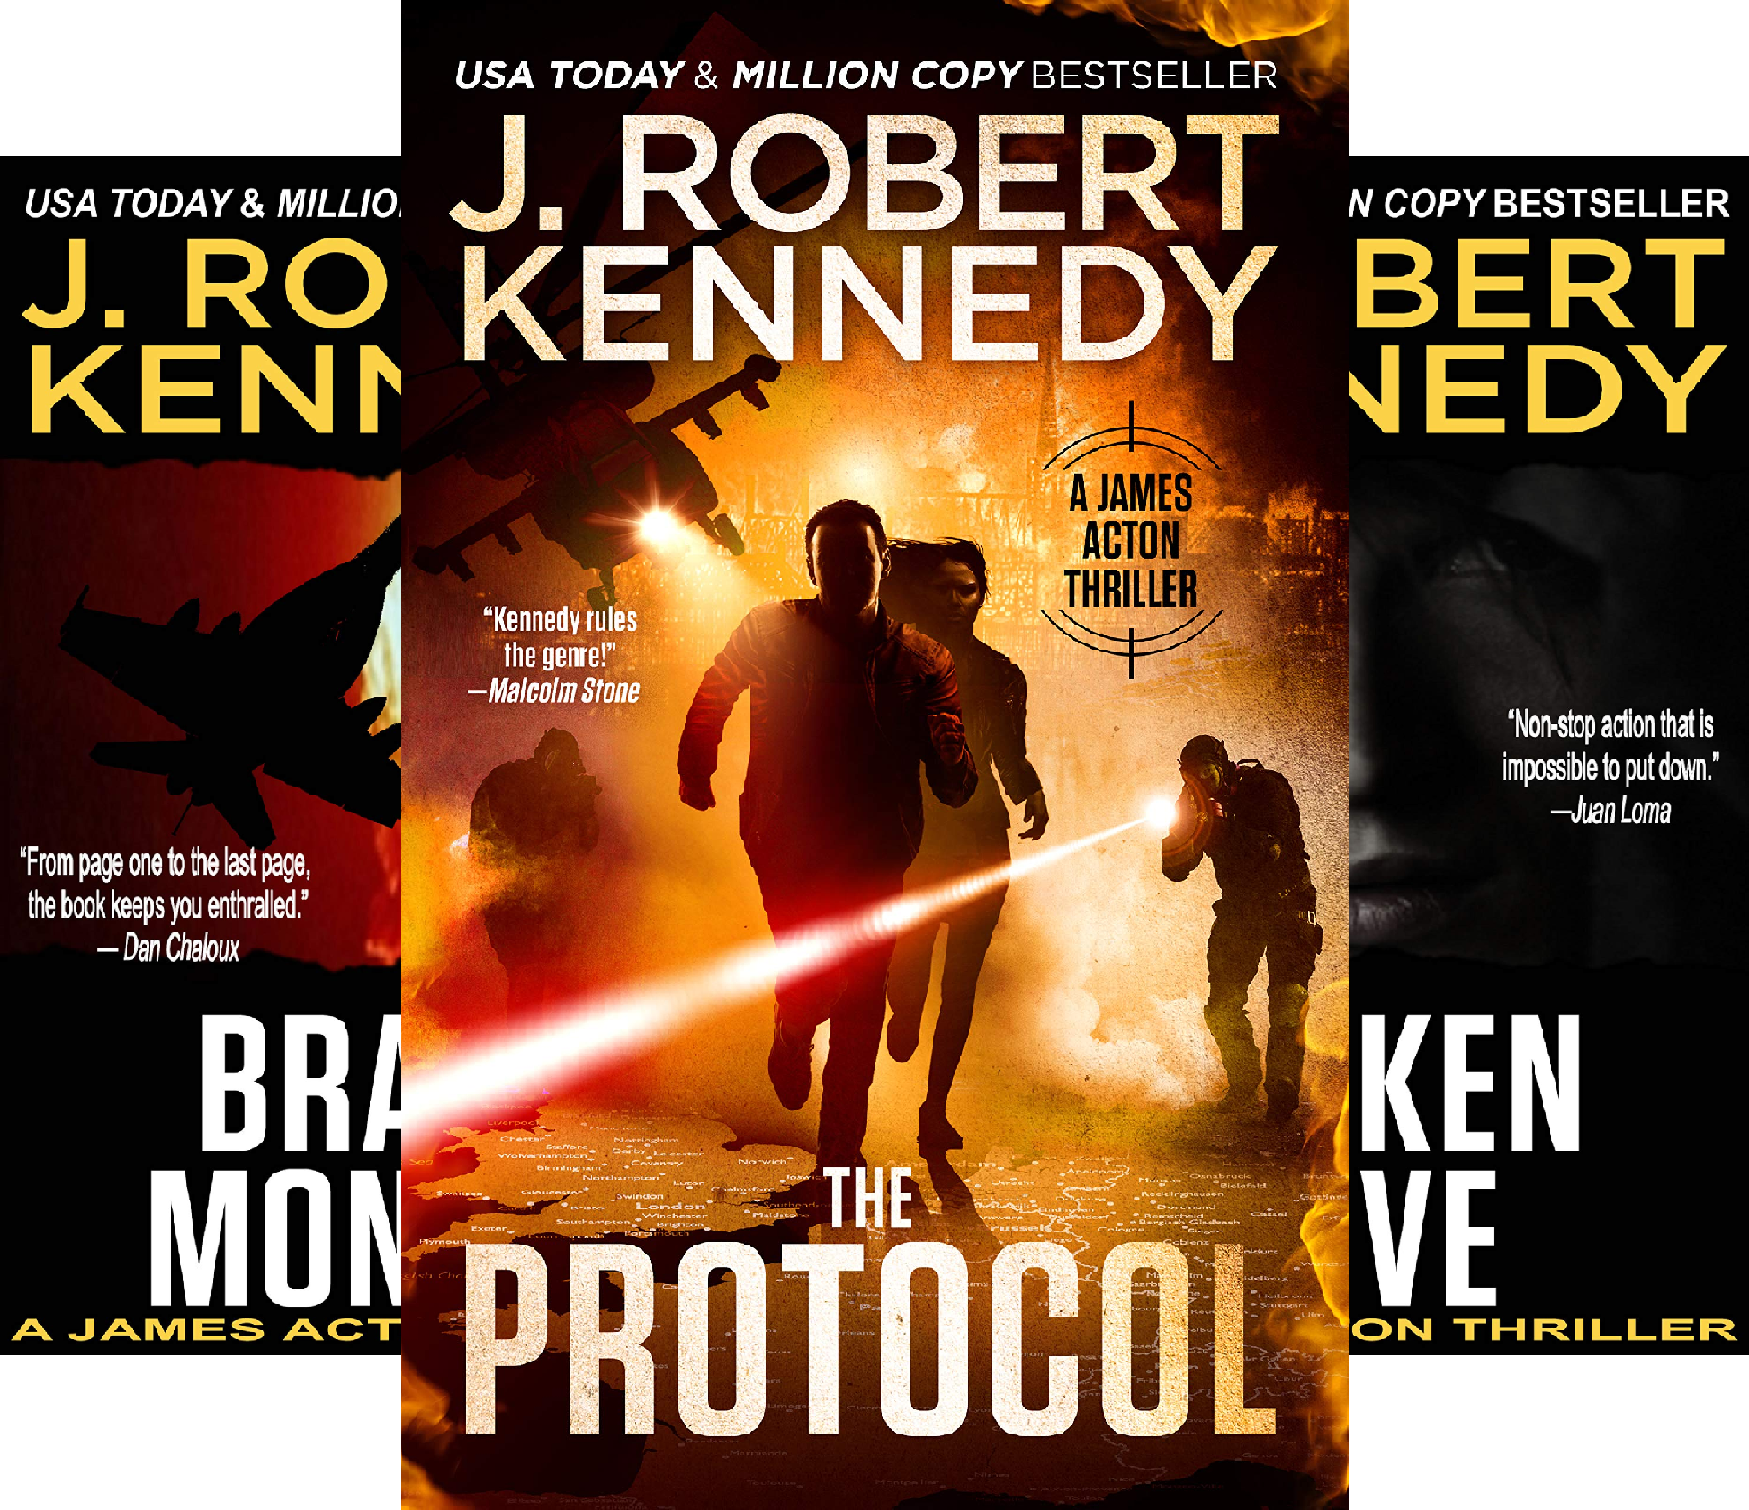 James Acton Thrillers (23 Book Series)